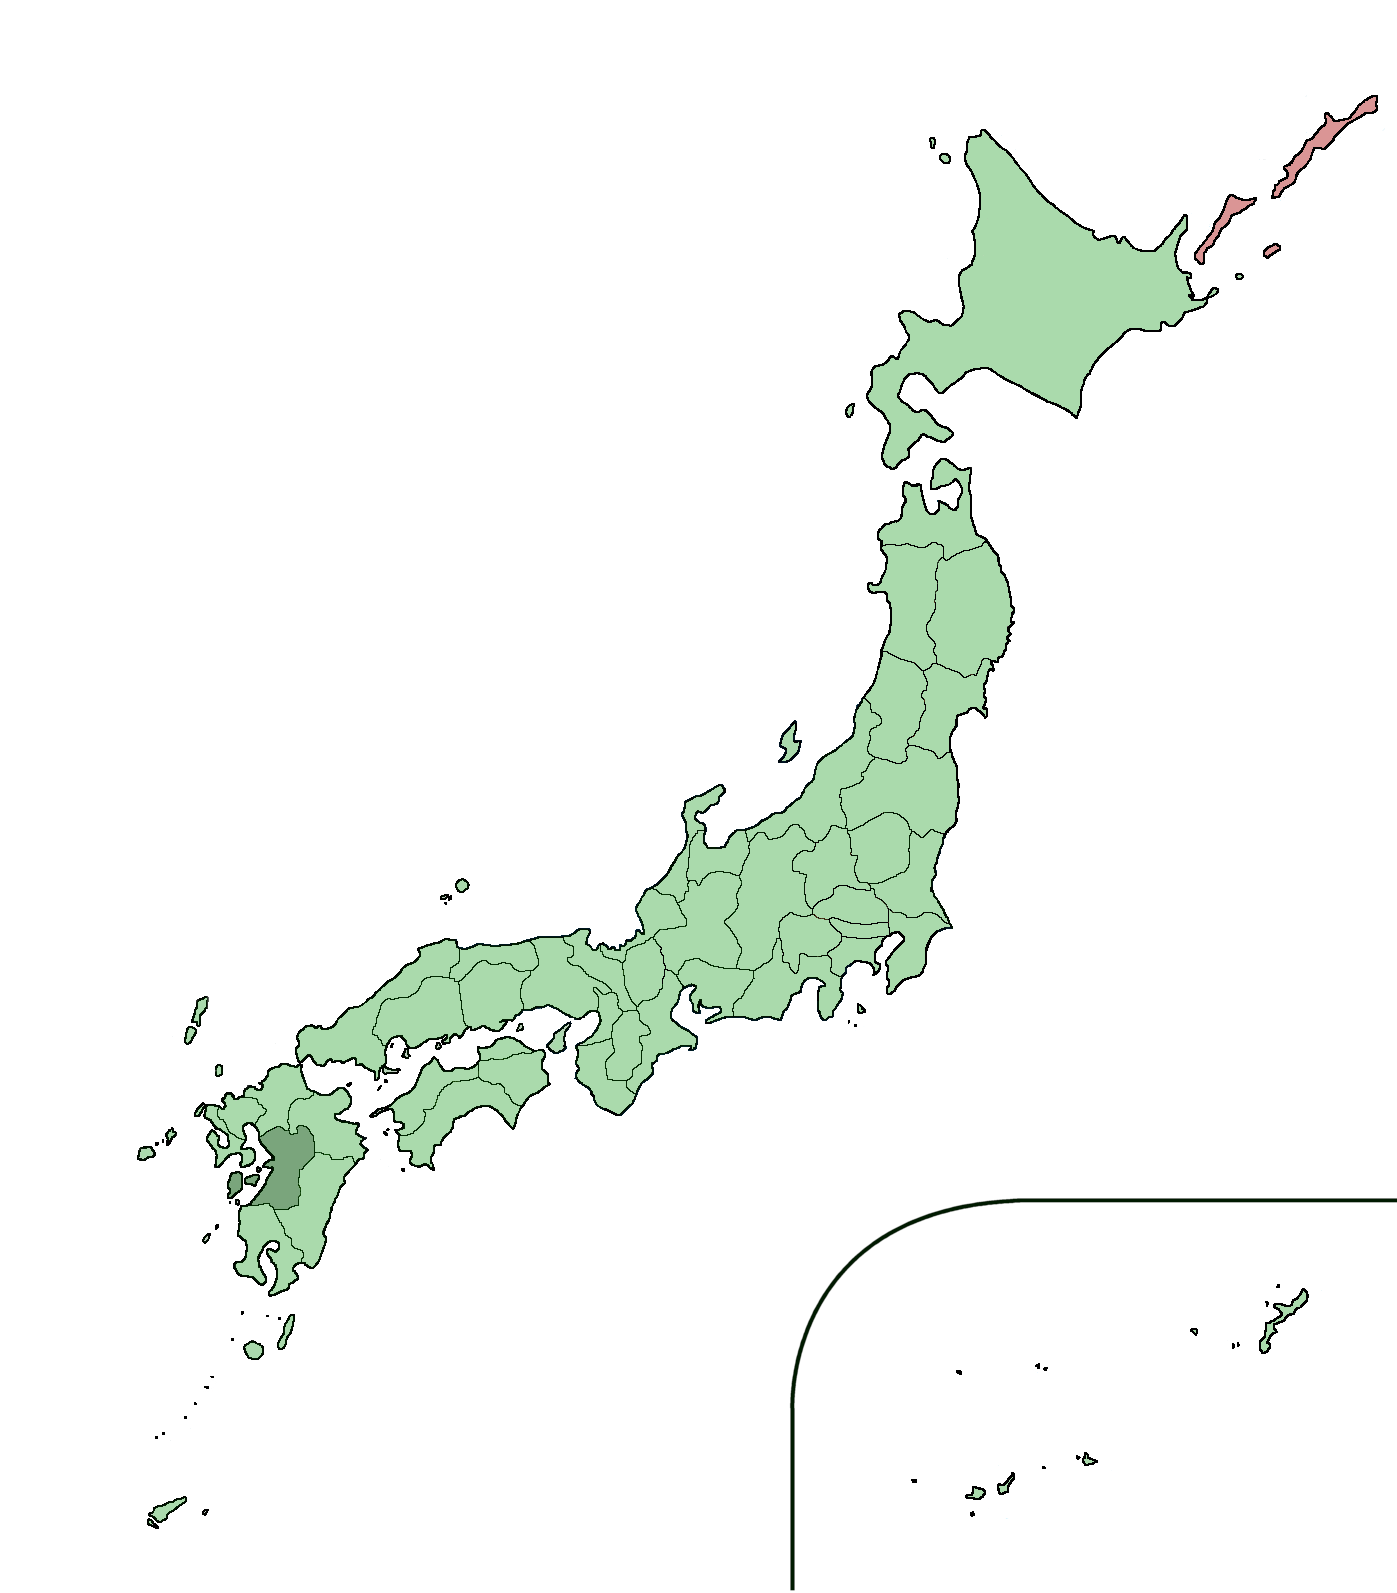 FileJapan Kumamoto largepng  Wikimedia Commons